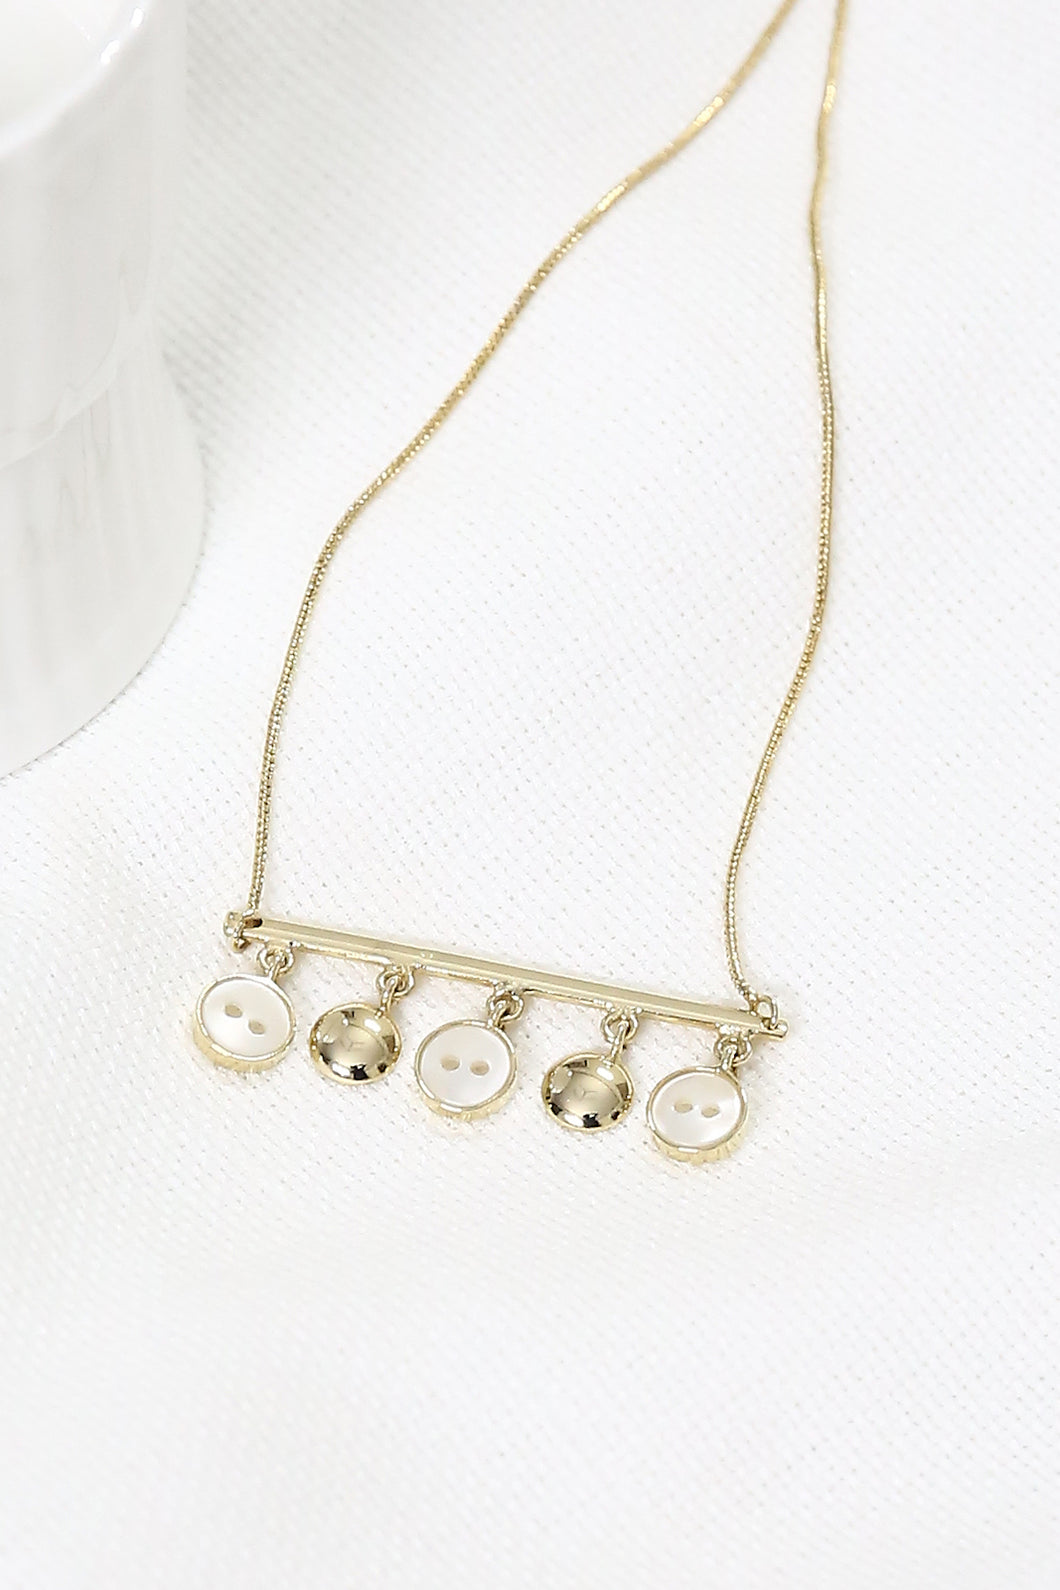 G01N00110S (Necklace)